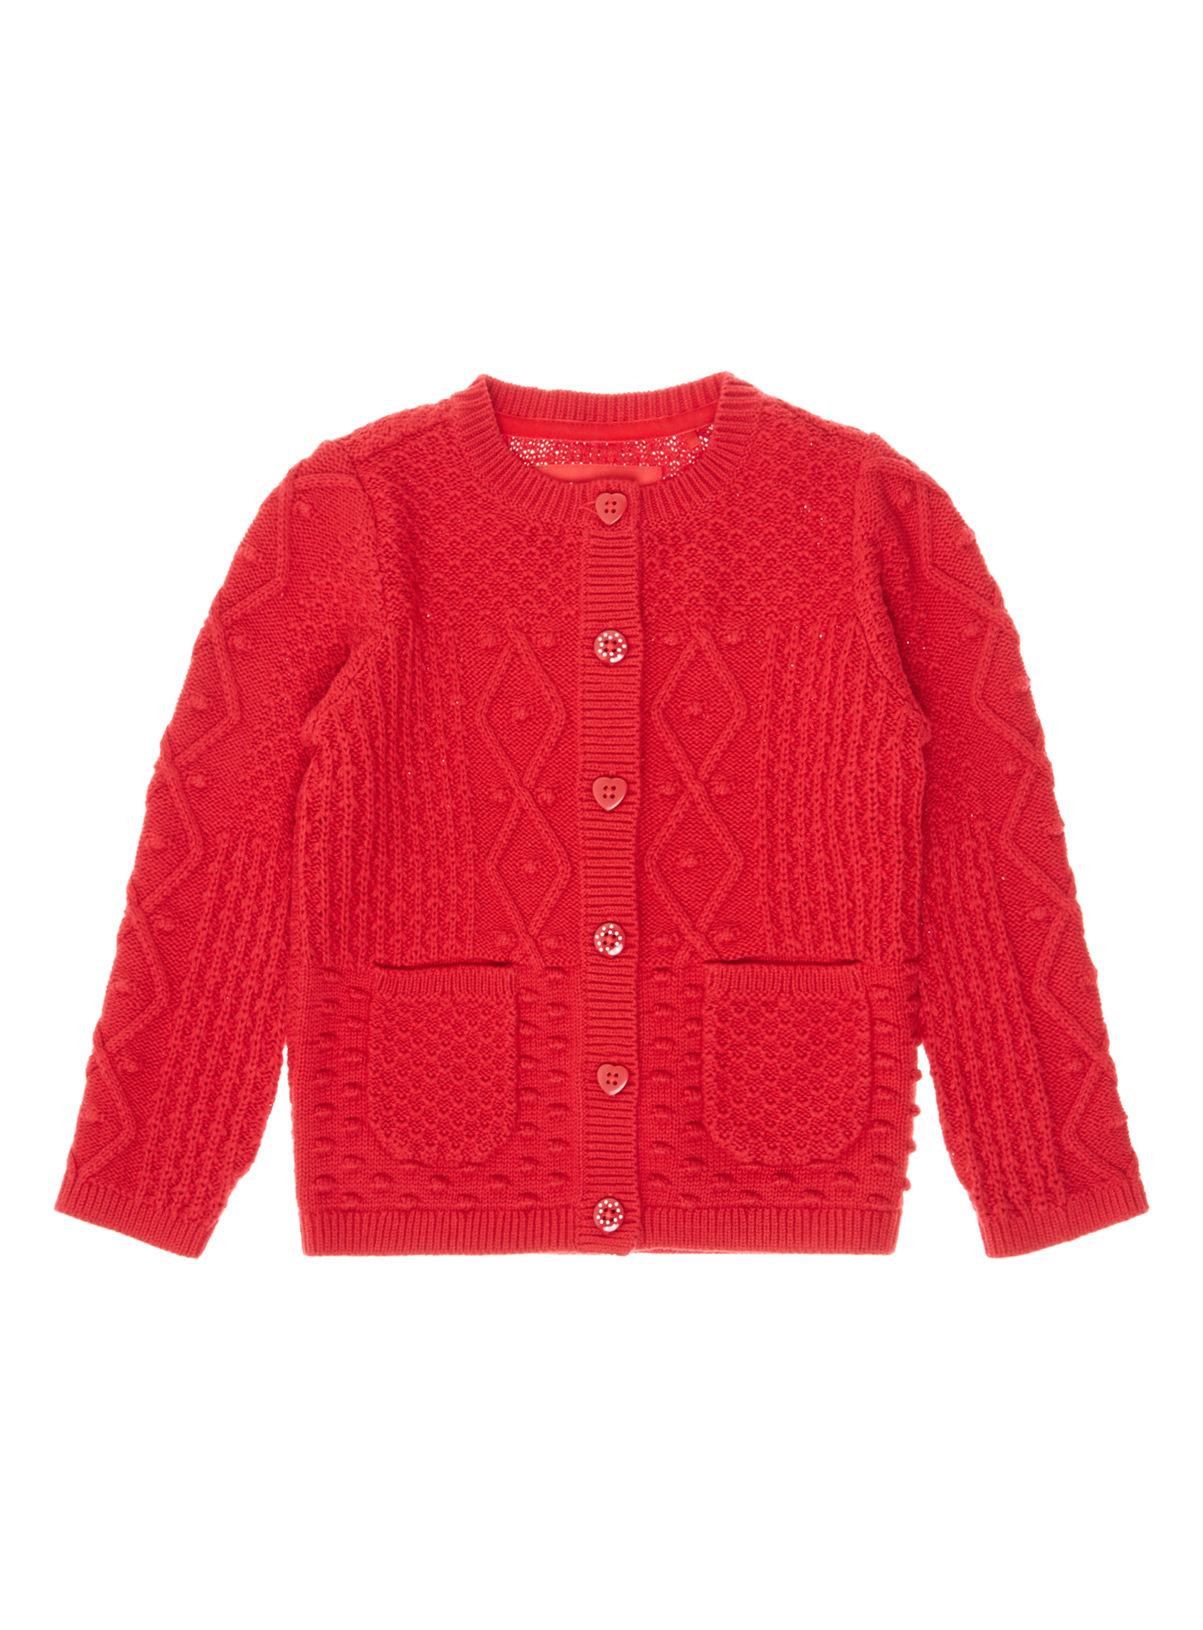 All Girl's Clothing Red Knit Cardigan (9 months-6 years) | Tu clothing